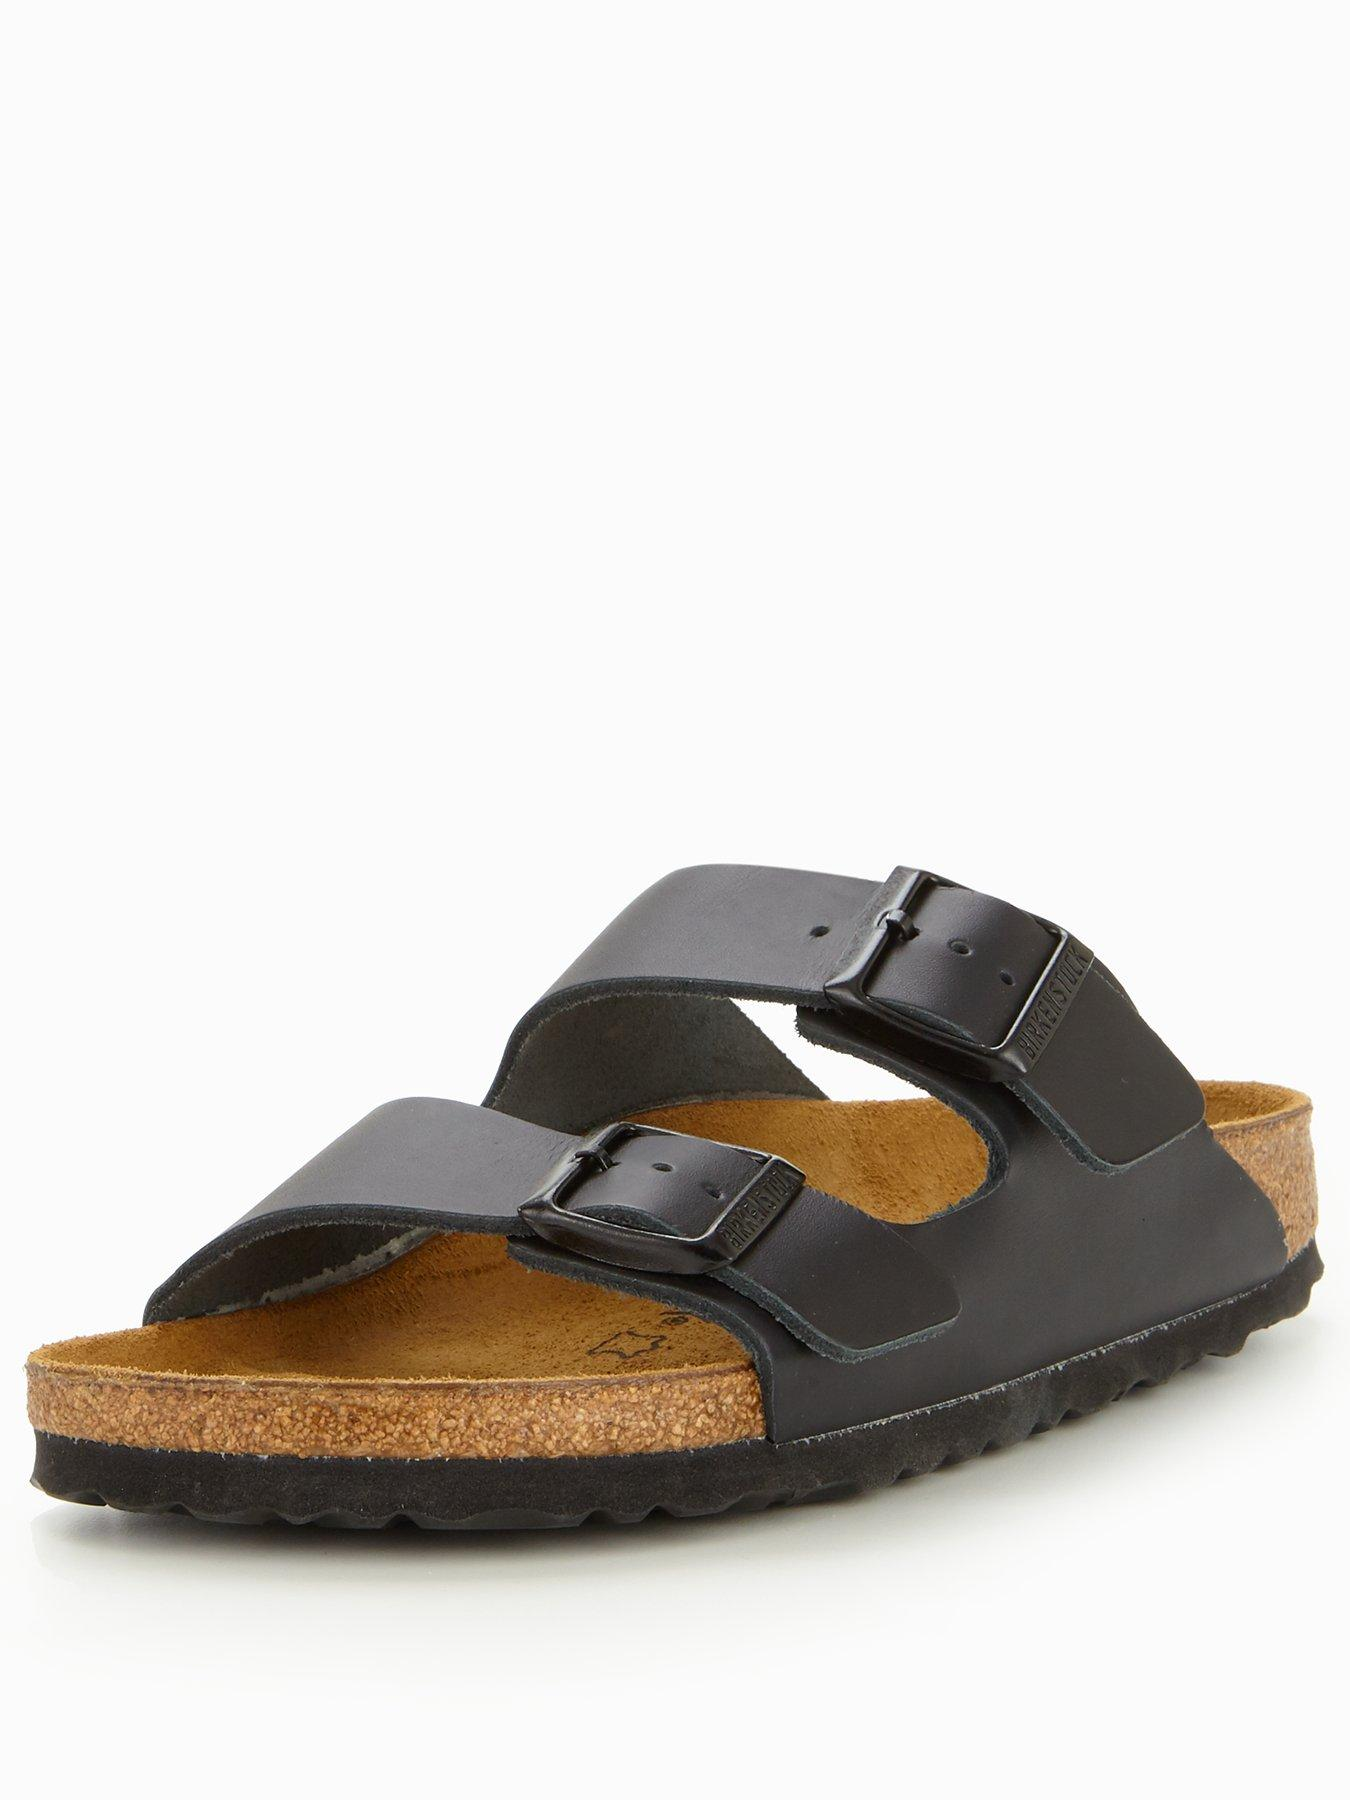 Black Sandal Slide Narrow Arizona Strap Two 7ygmbIvYf6